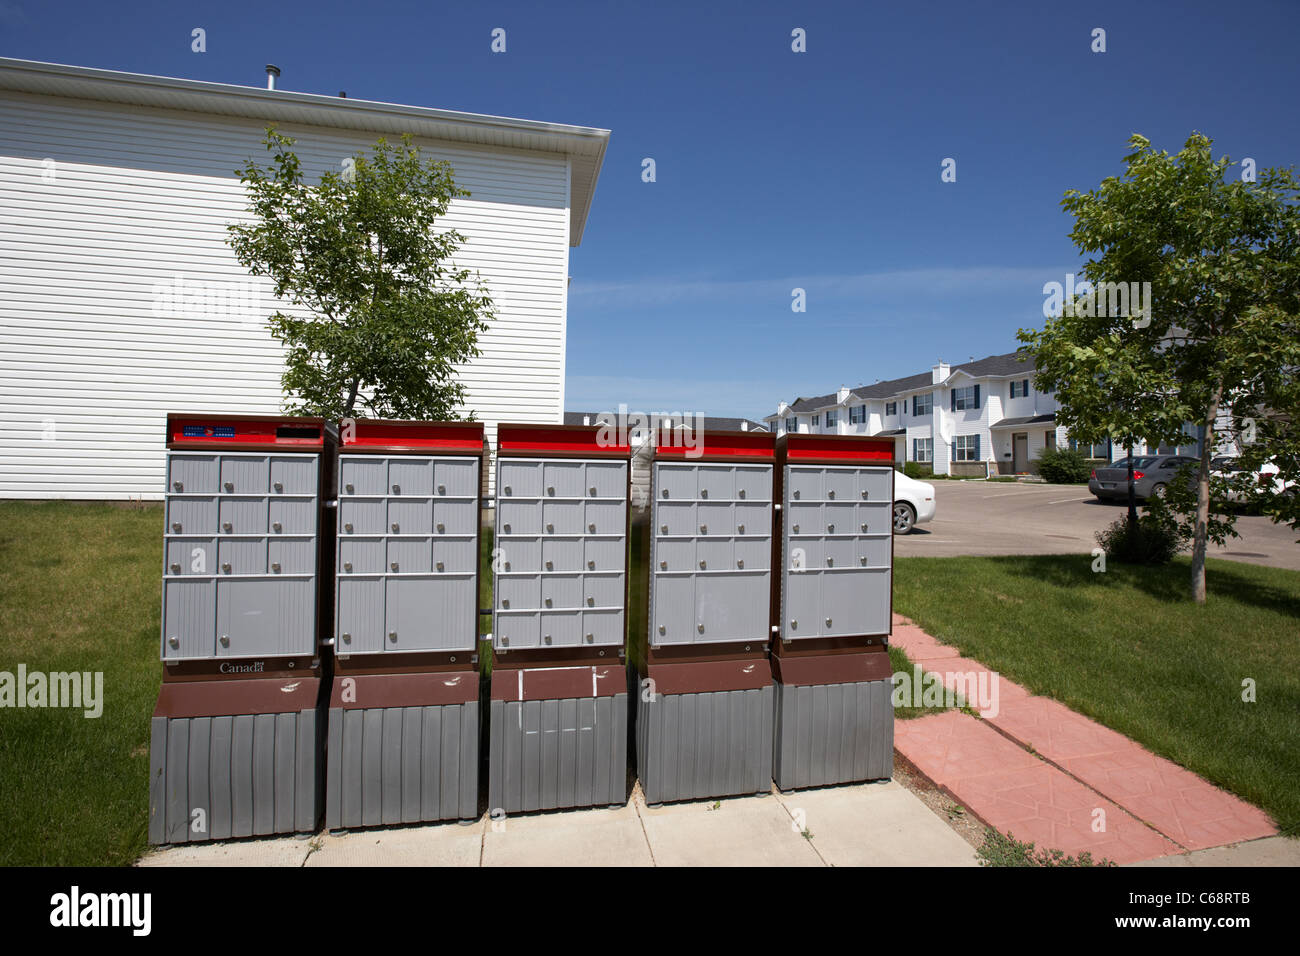 canada post residential mailboxes postboxes on condominium managed property Saskatoon Saskatchewan Canada - Stock Image